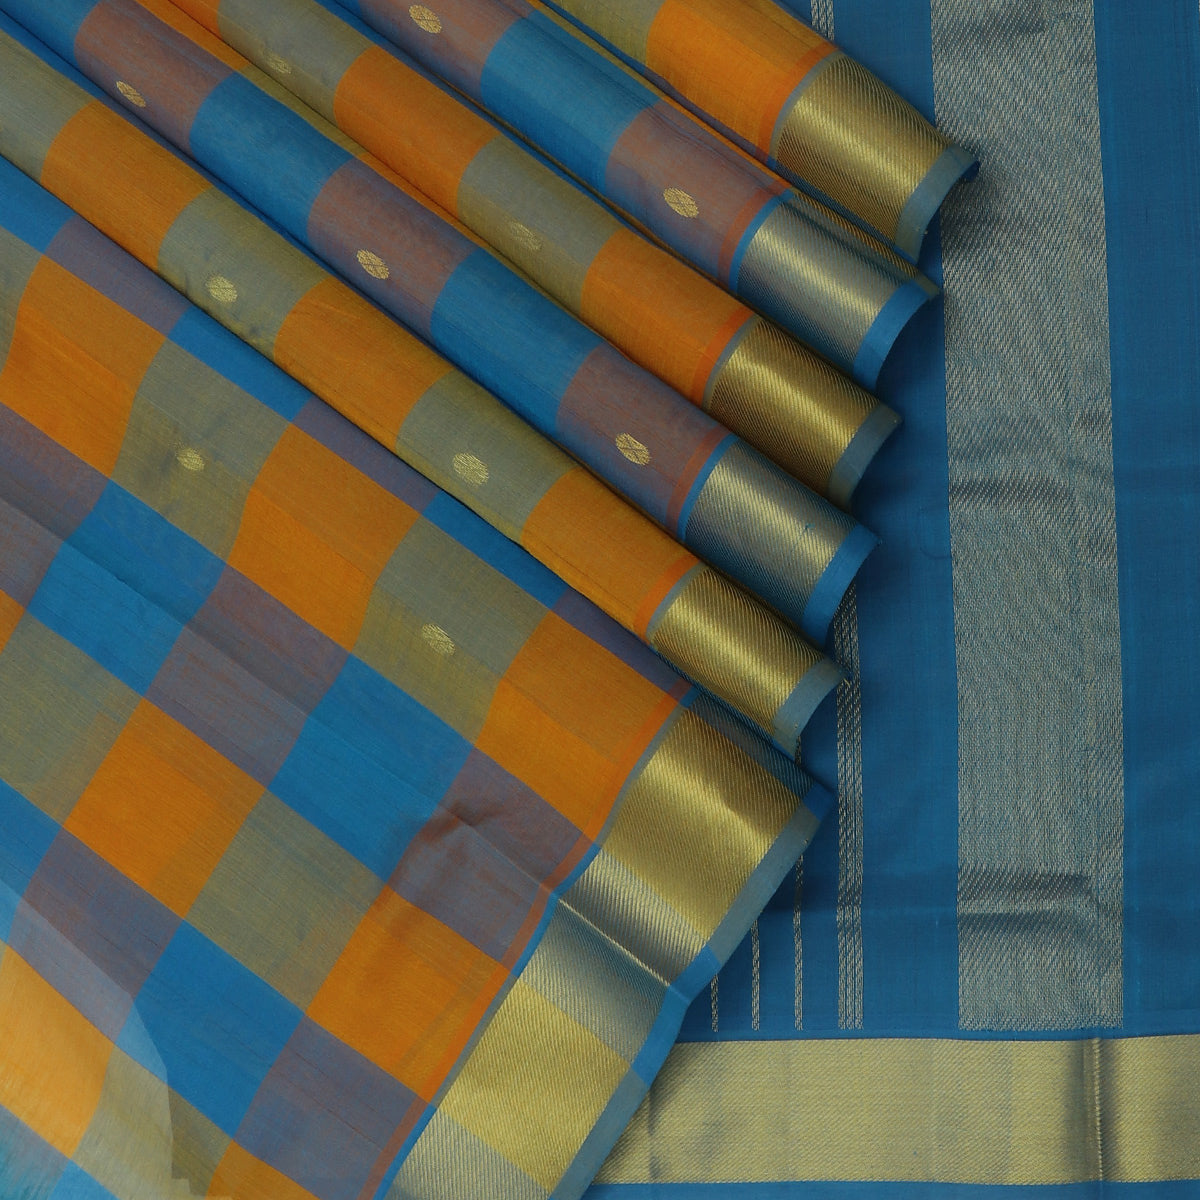 Silk Cotton Seree Paazhum Pazhamum Checks Sky Blue and Honey Color with Buttas and zari Border